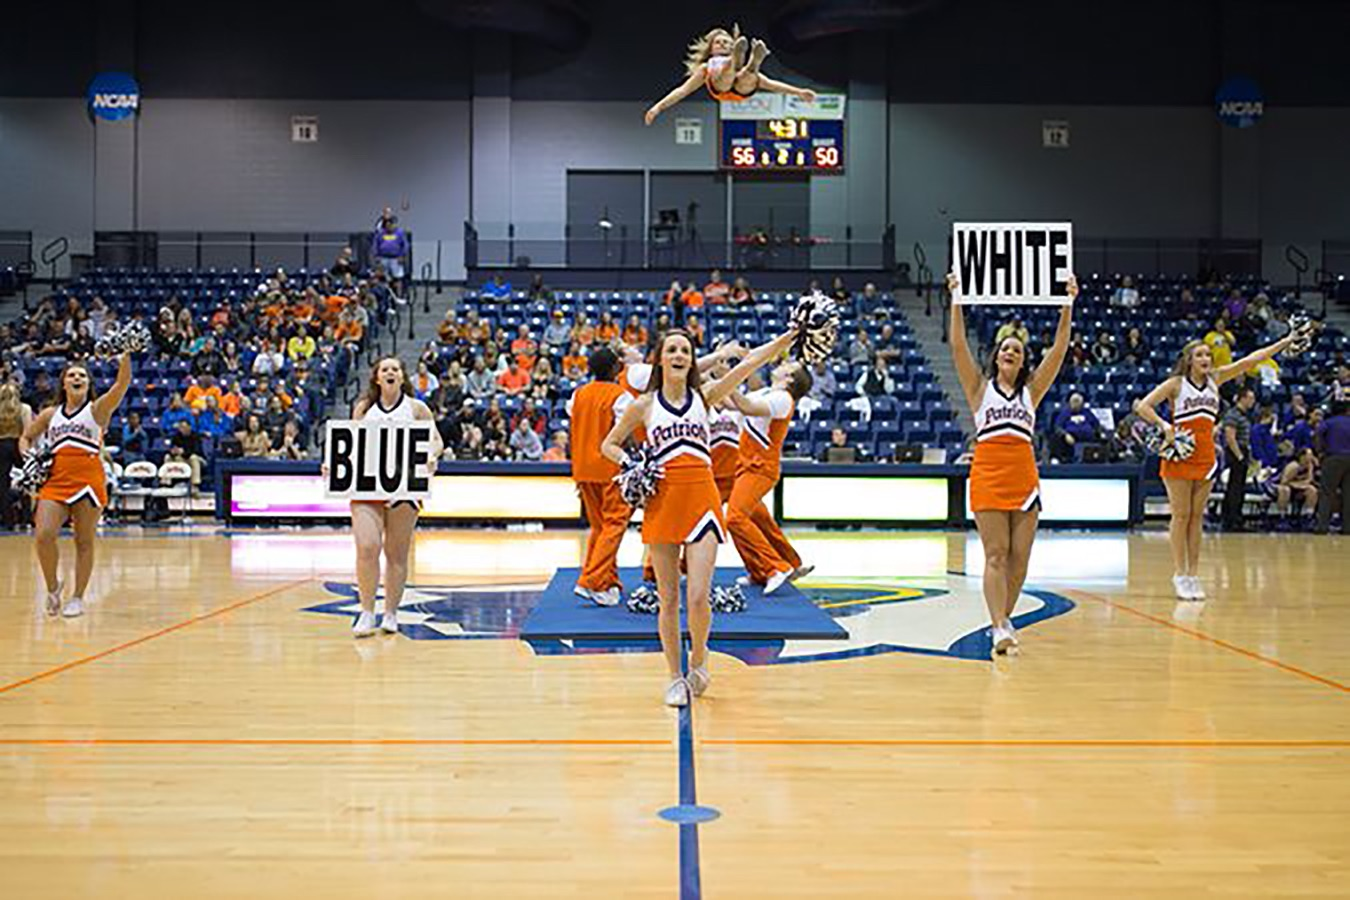 Ut Tyler Dance And Cheer Video Tryouts University Of Texas At Tyler Athletics